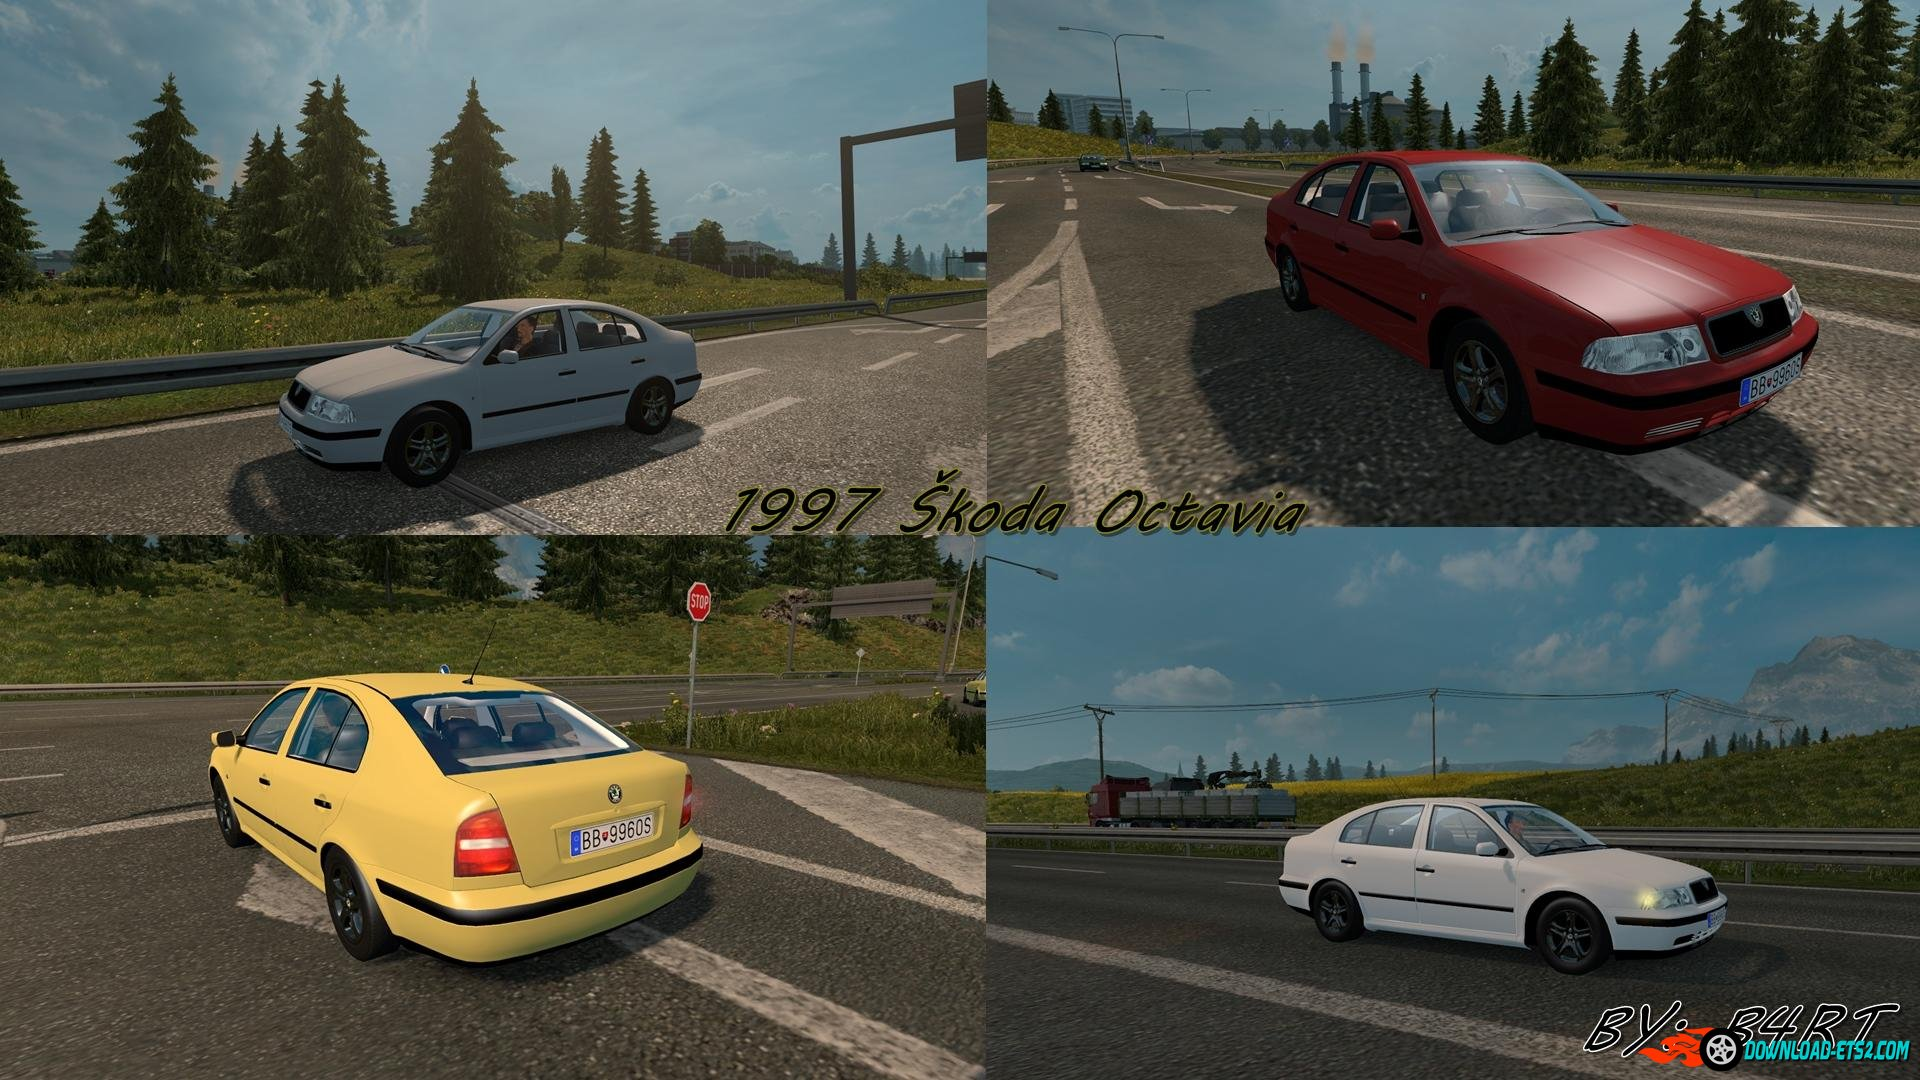 1997 SKODA OCTAVIA AI Traffic by B4RT